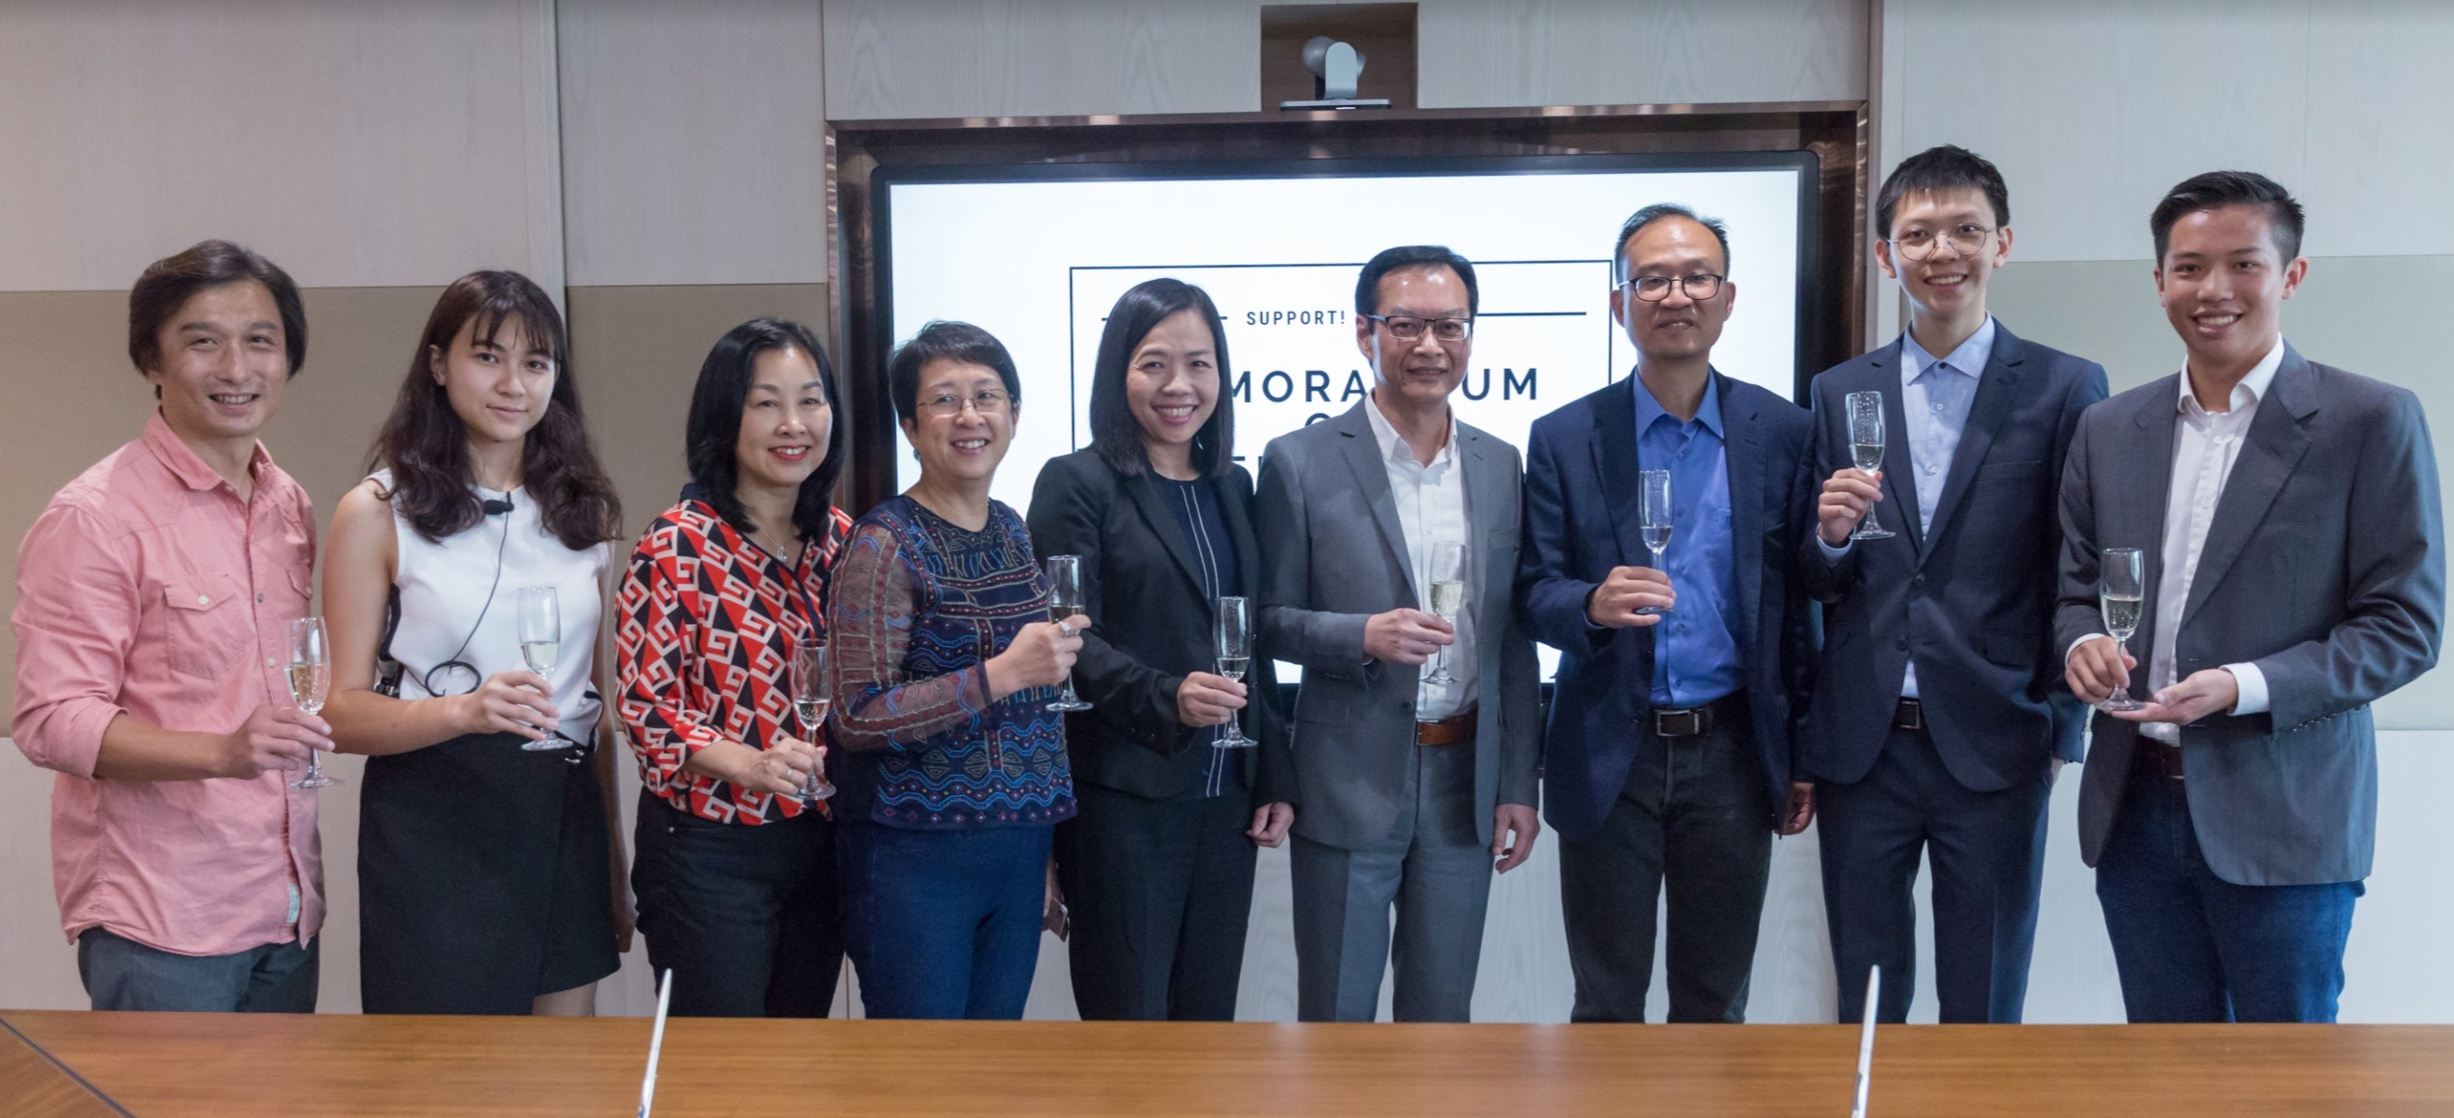 Representatives from the Foundation and BGCA toasting to the partnership's success!    (L-R: Mr Wing Kin Chan, Supervisor, Sha Tin District, BGCA; Ms Francisca Lam, Foundation's Vice President, Operations (Primary Programmes); Ms Dilys Lai, BGCA Assistant Director; Ms Peonie Wong, Foundation's Executive Director; Ms Jacqueline Lam, Foundation's Board Director; Ir Wai Chi-Sing, GBS JP, Foundation's Board Director and Signing Representative; Mr Charles Chan, BGCA Executive Director; Mr Alex Yu, Foundation's President (Designate); Mr Joseph Wan, Foundation's President)